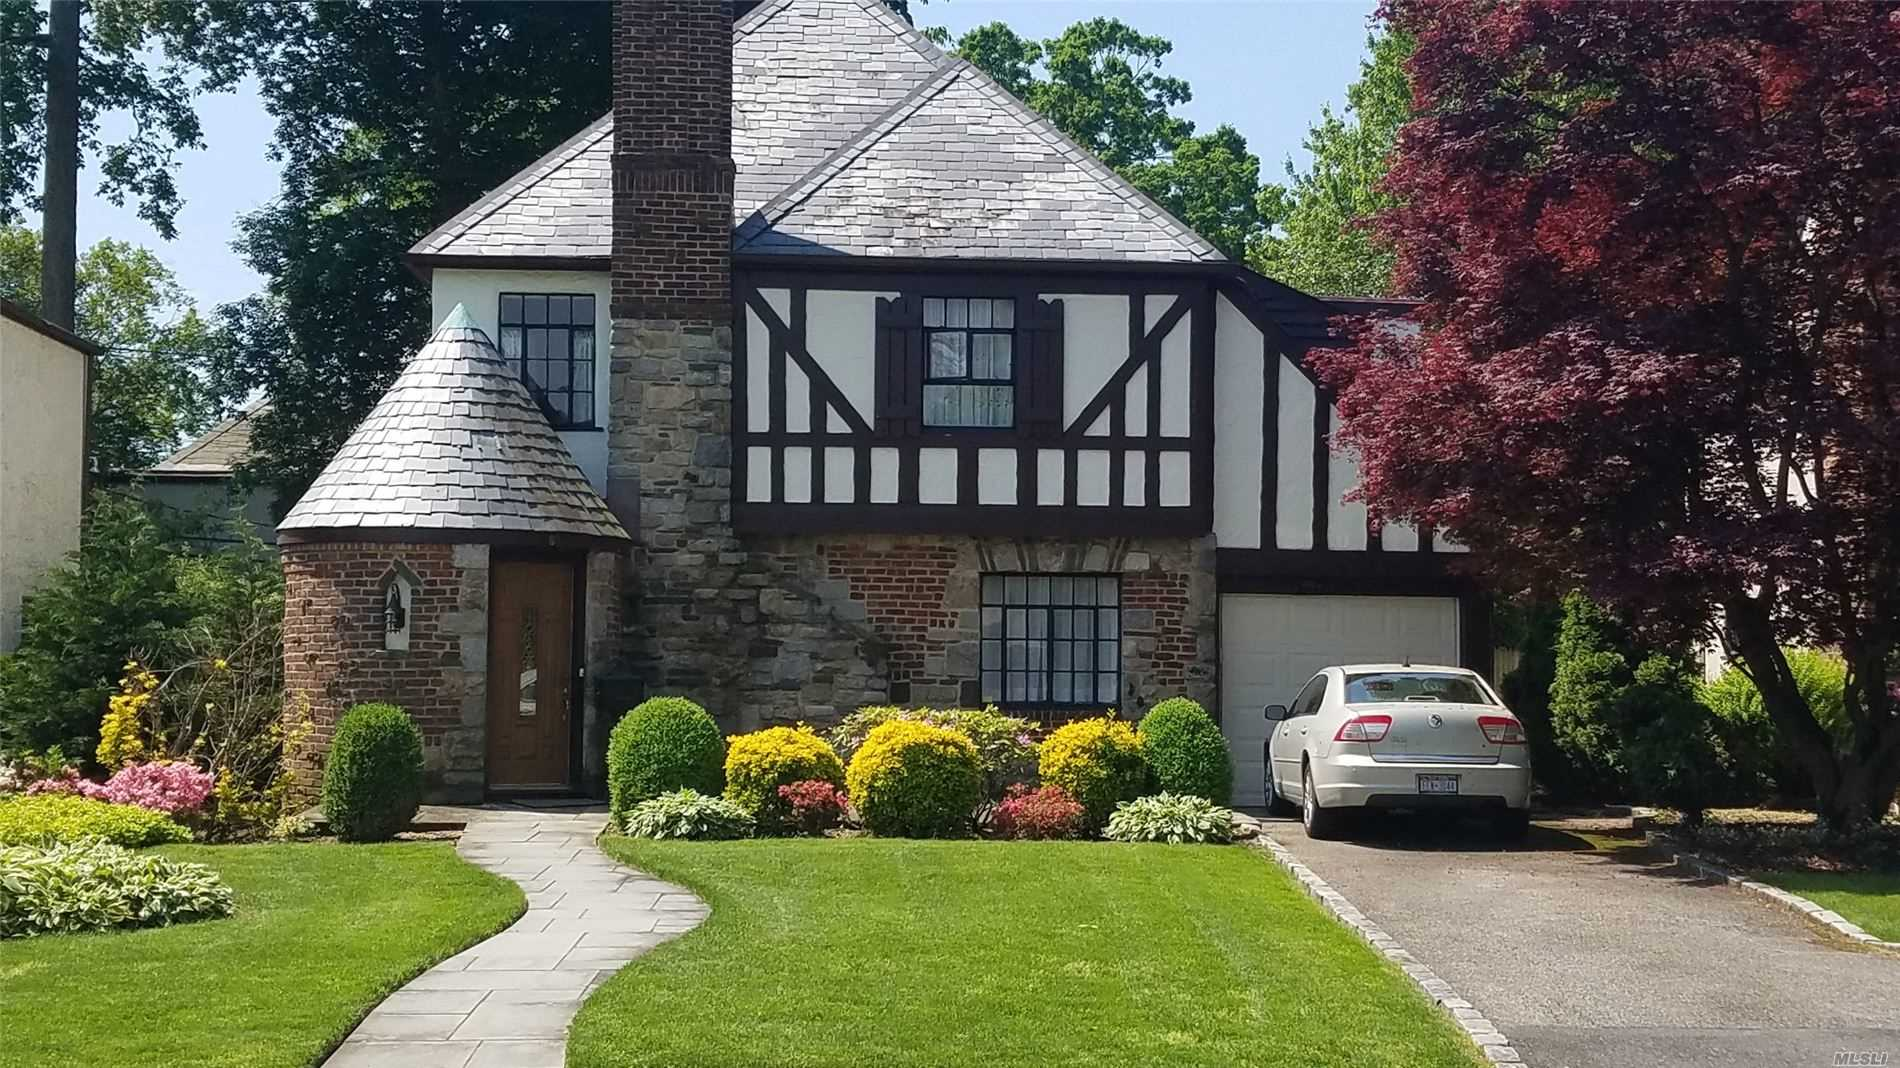 Picturesque and charming Tudor on a quiet street one block away from the country club/golf course. Hardwood floor throughout main level. Beautiful large living room with fireplace. Formal dining room with chandelier. Eat in kitchen with granite countertops and a full pantry. Large master bedroom with full bath. Three more bedrooms and full bath with both bathtub and shower. 40 mins from Penn Station.